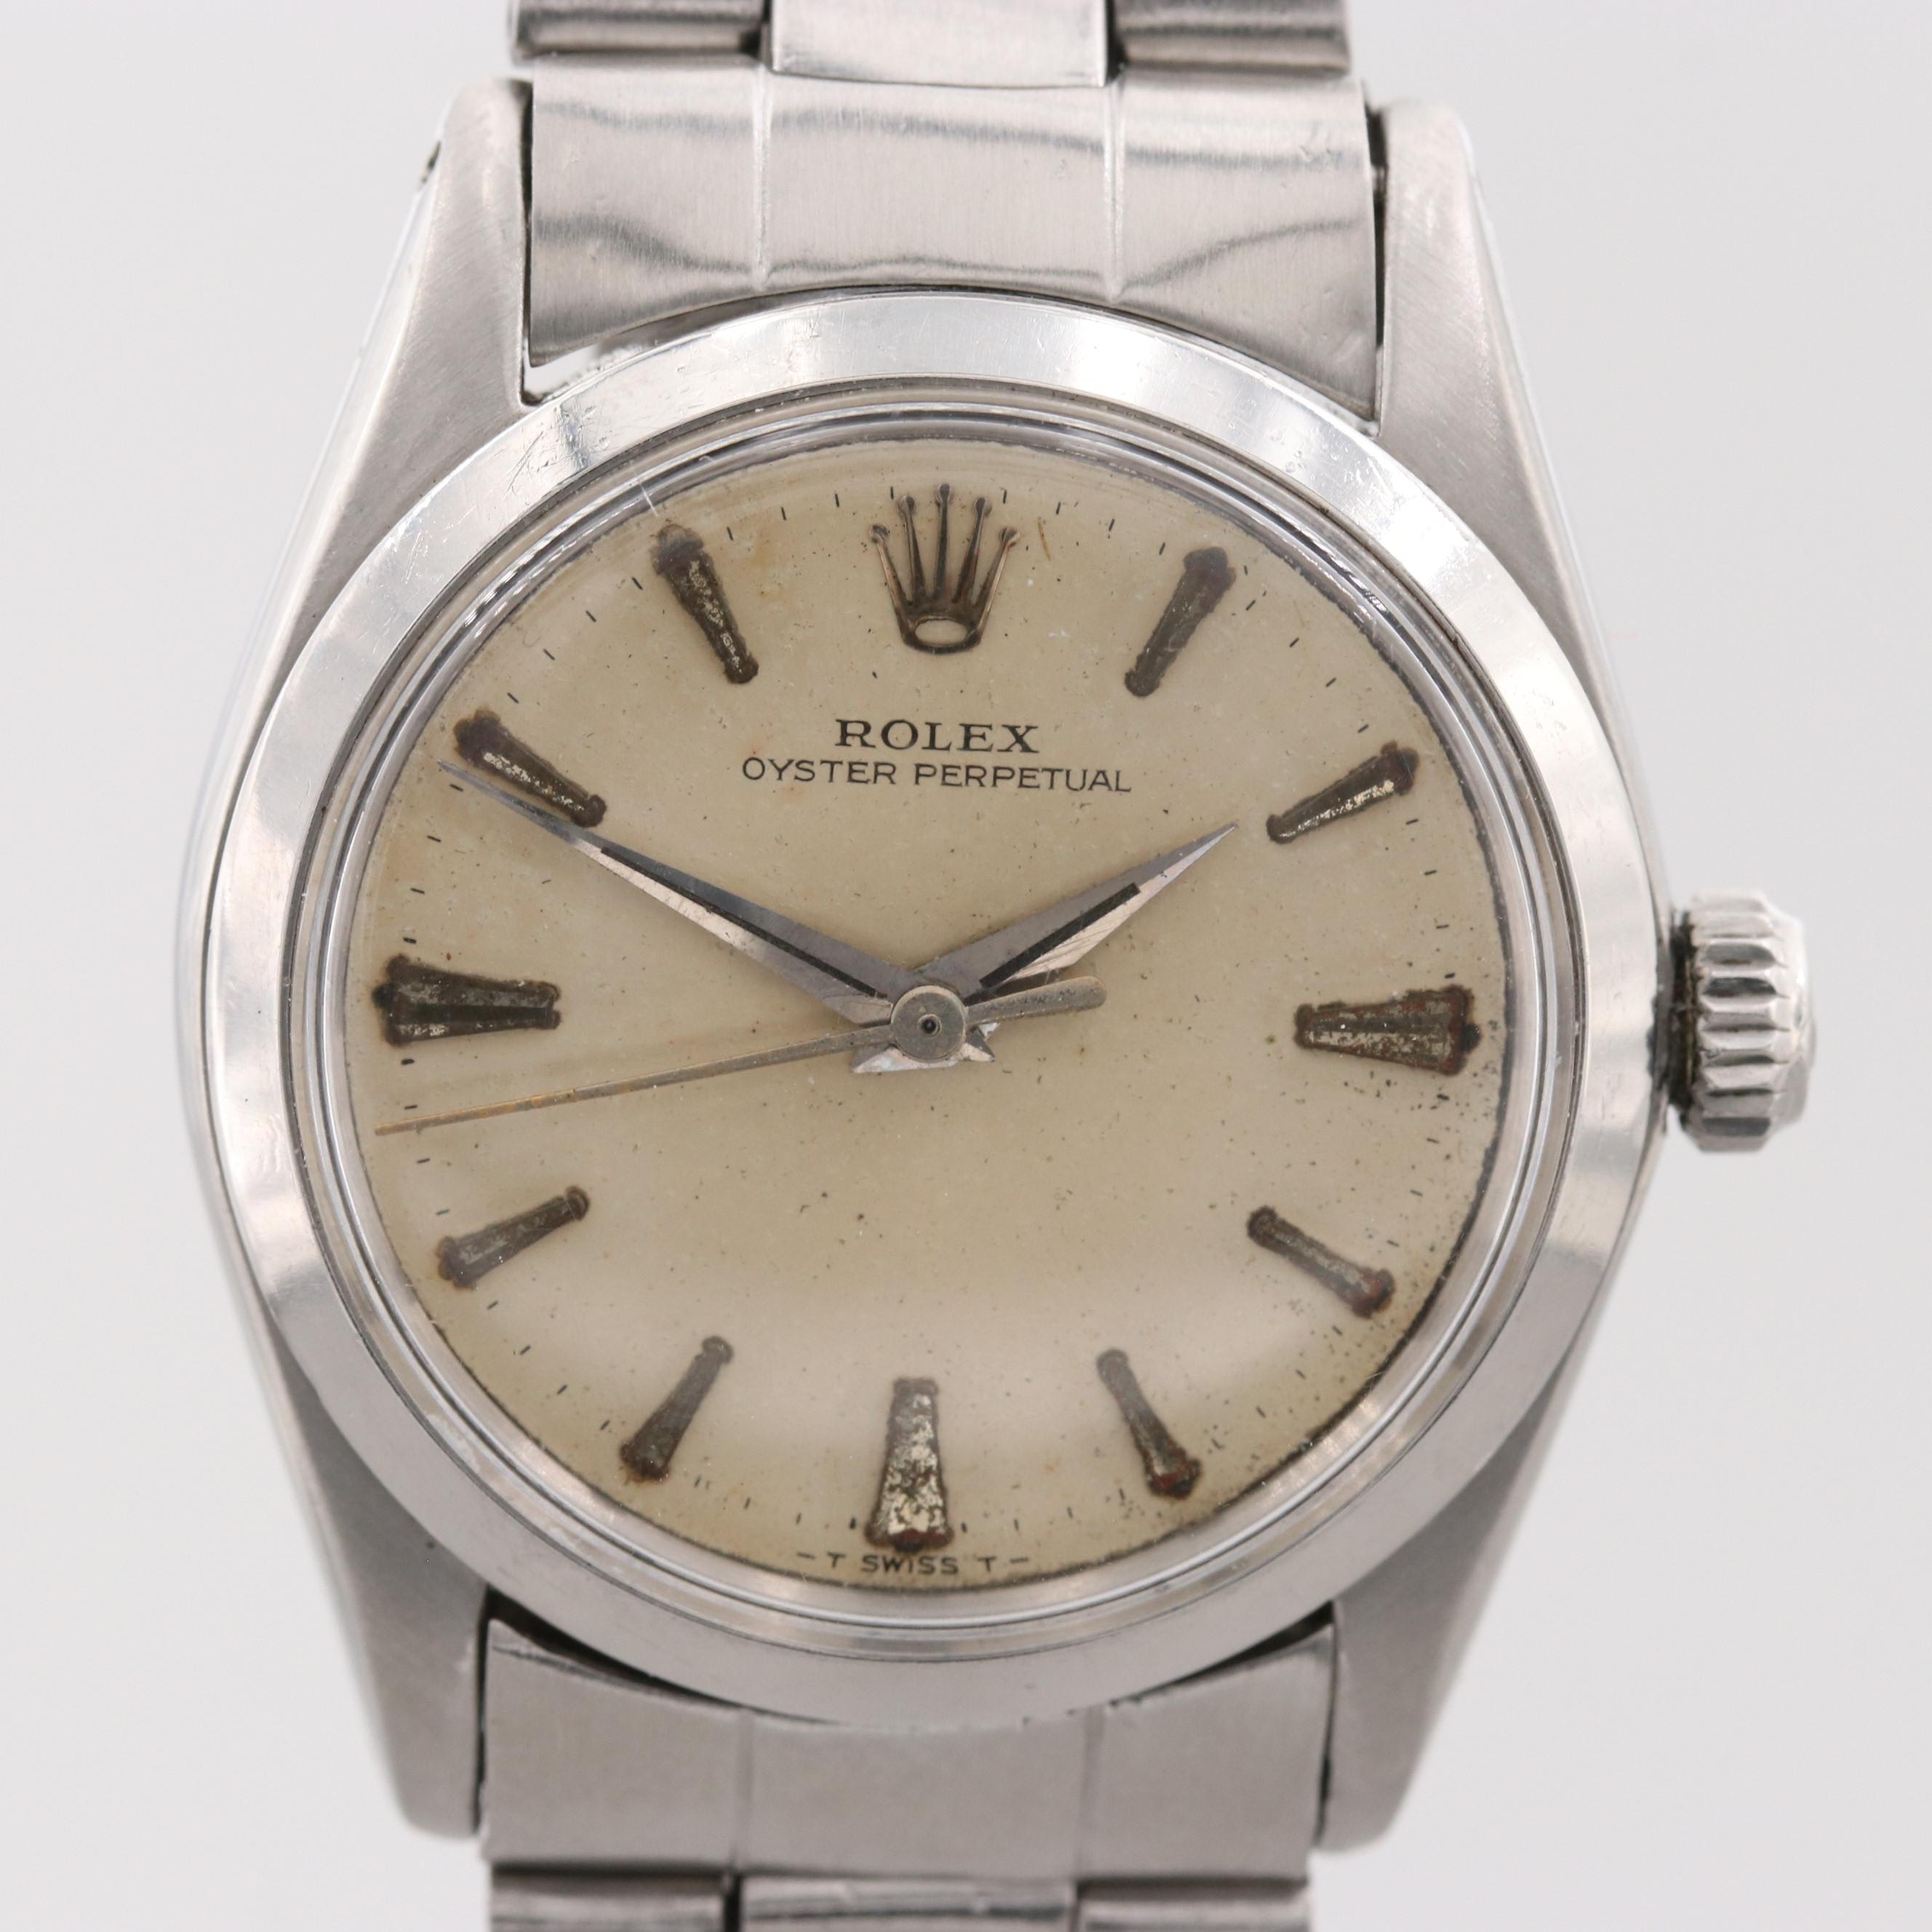 Vintage Rolex Oyster Perpetual Stainless Steel Automatic Wristwatch, 1964